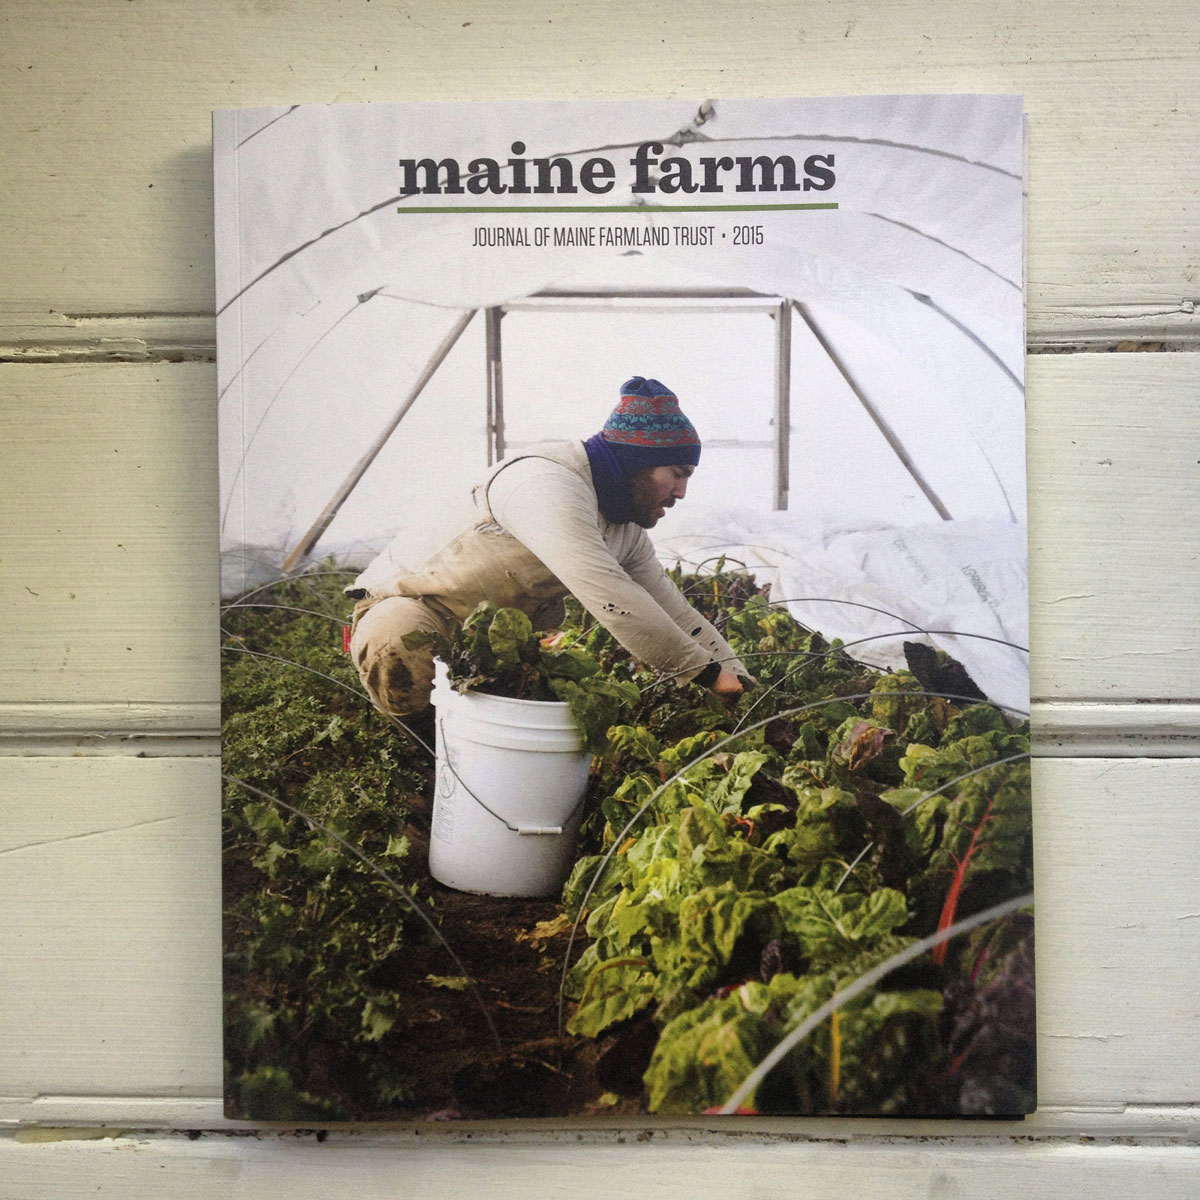 Read The Full 2015 Maine Farms